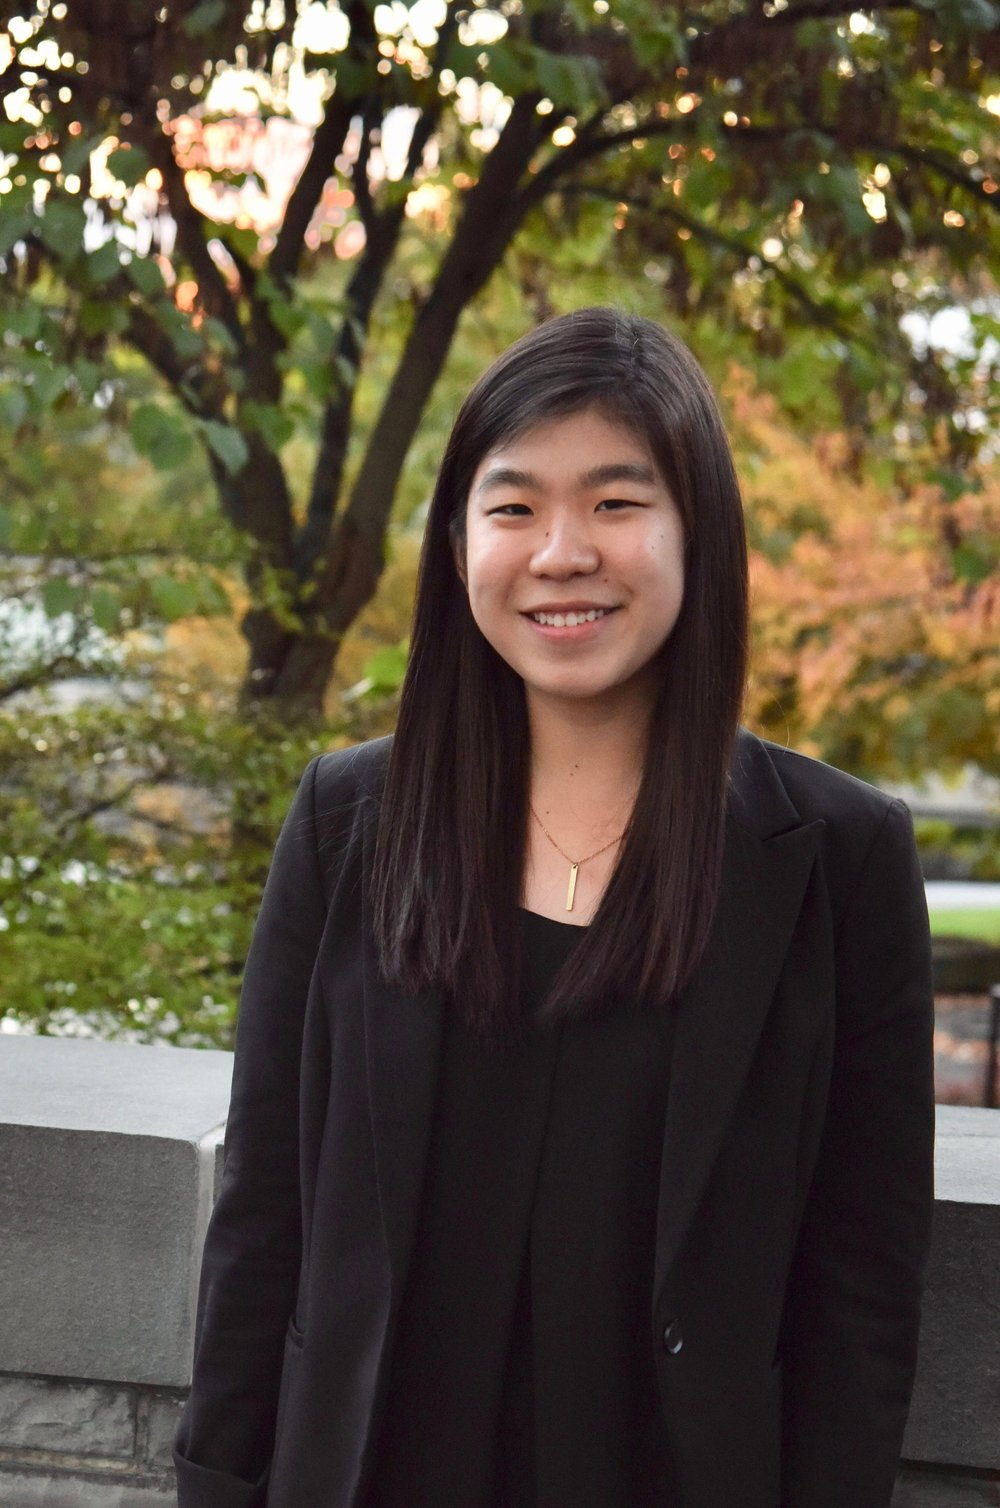 Julia Kim '22 - Major: Computer ScienceI wanted to learn more about different aspects of business while also further developing my writing skills and CBR gave me the chance to do both simultaneously.